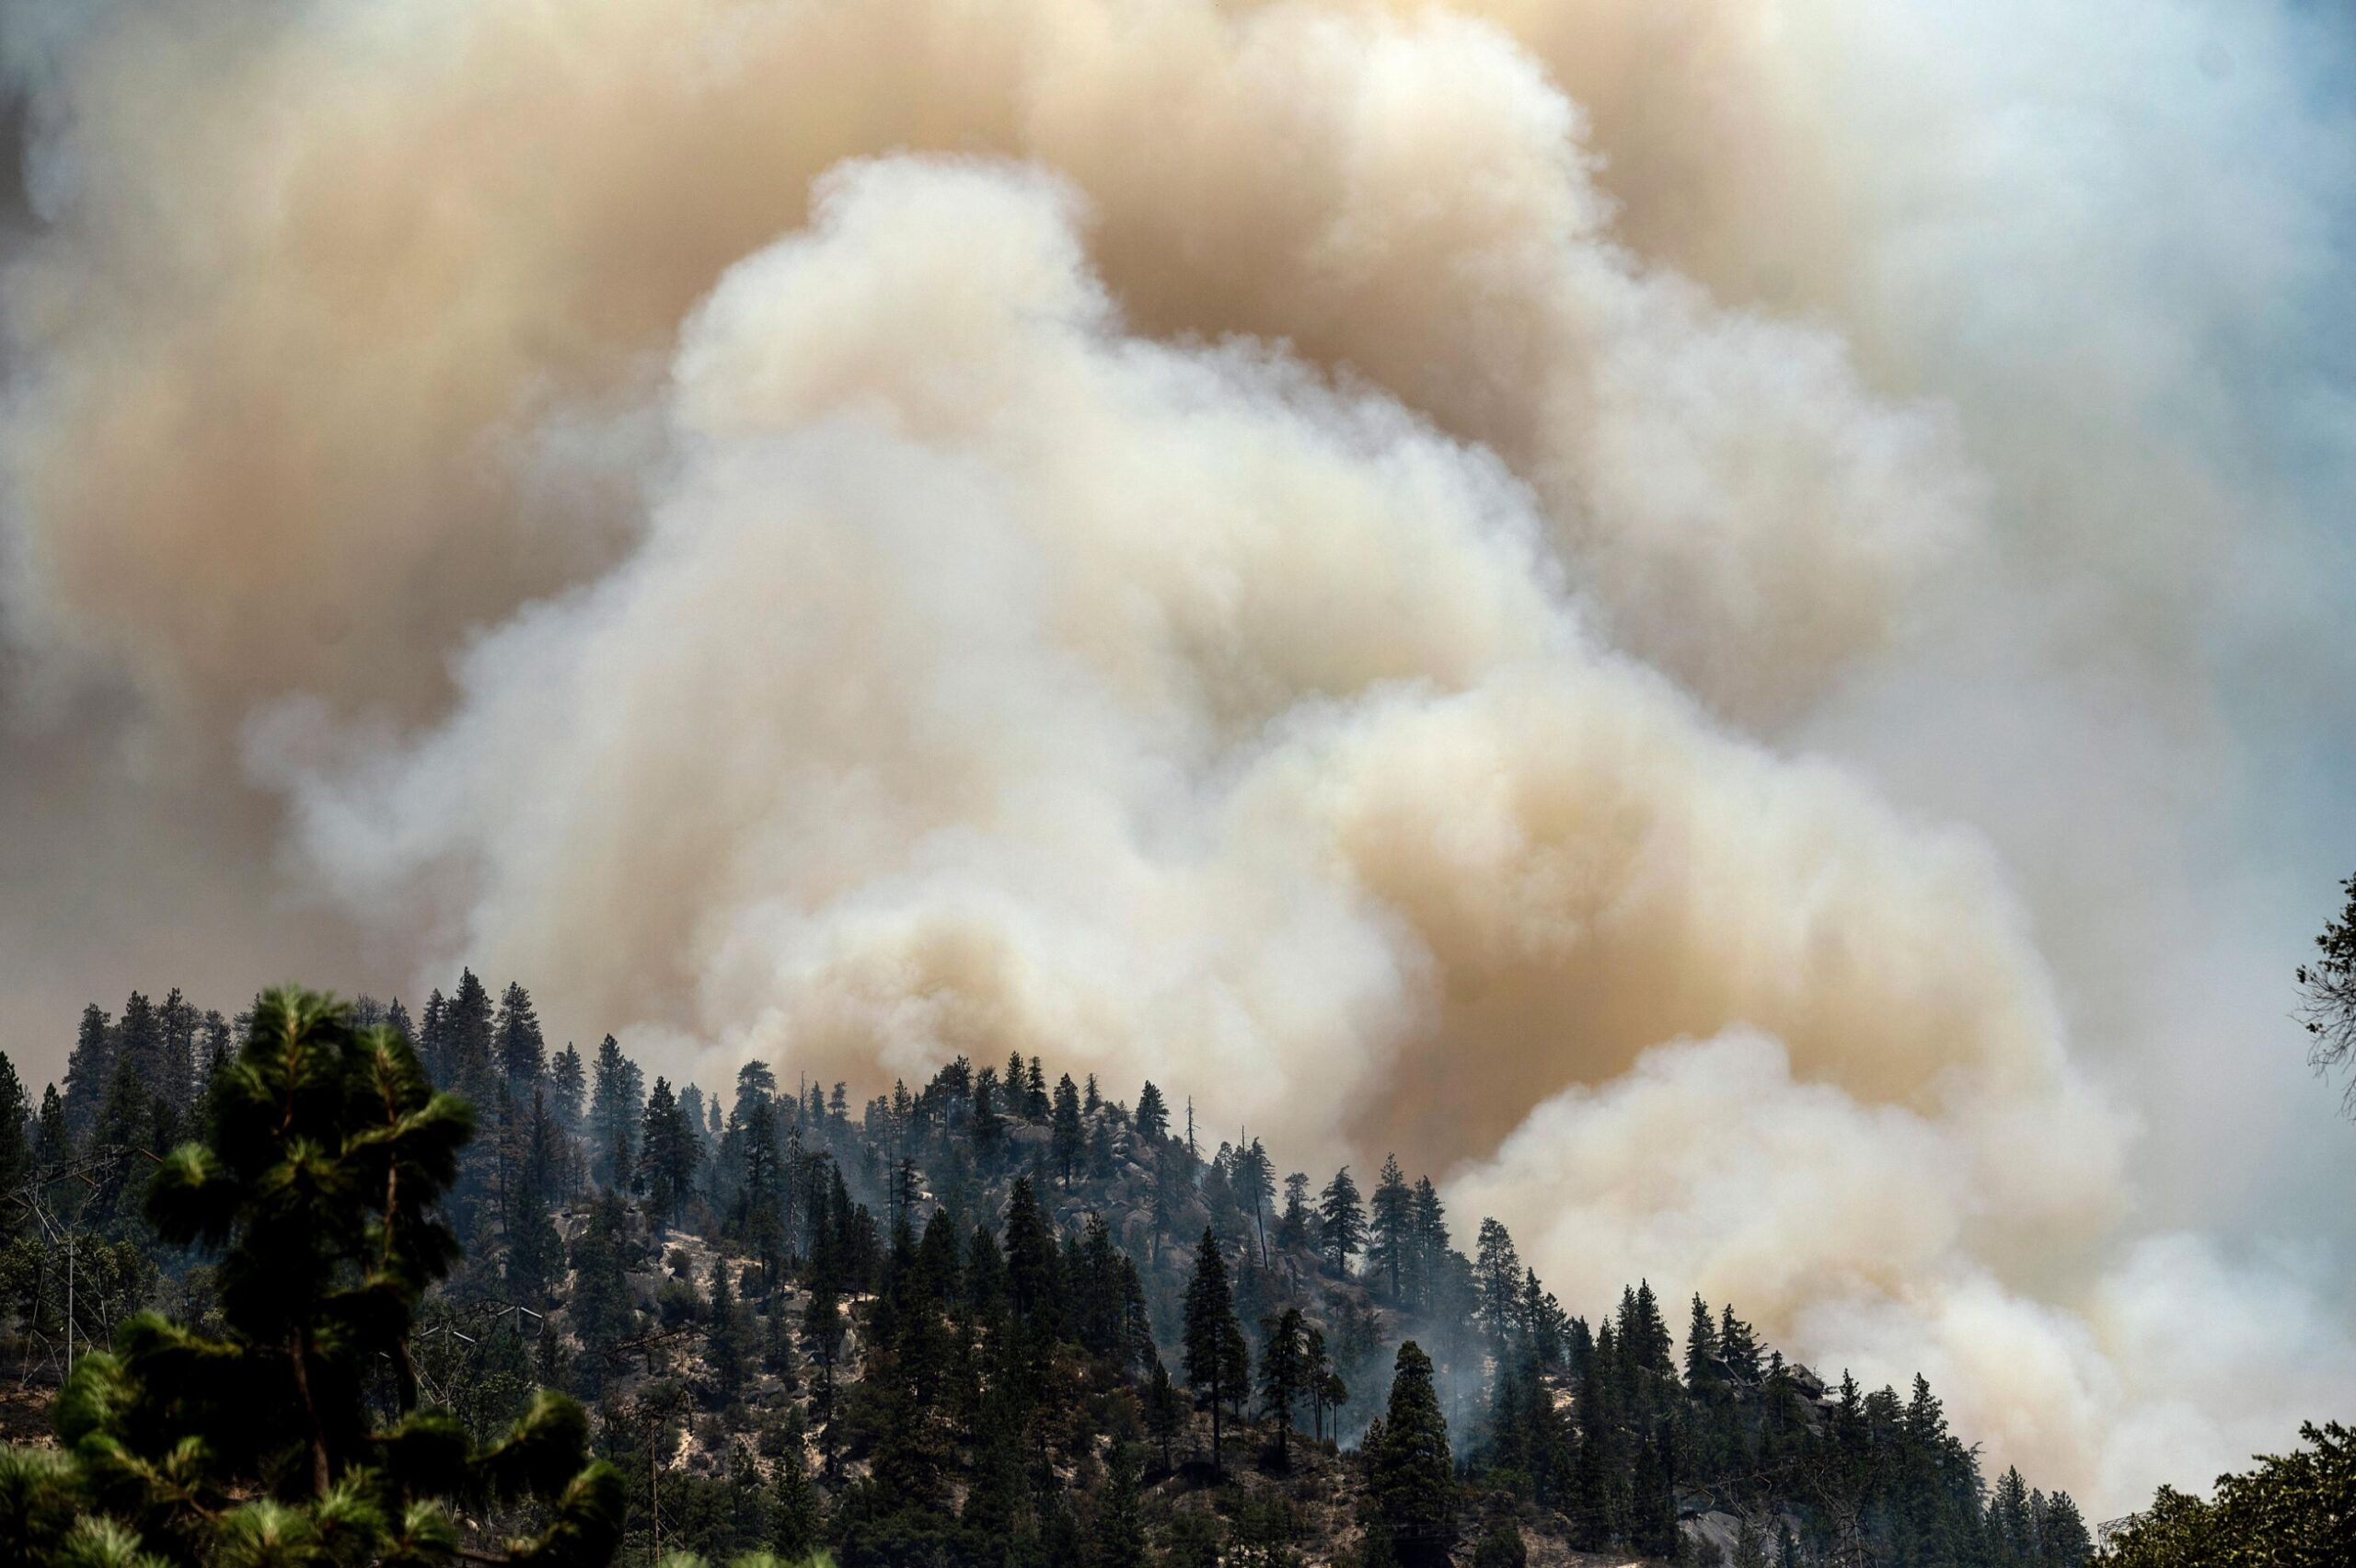 <i>Noah Berger/AP</i><br/>Smoke rises from the Dixie Fire burning along Highway 70 in Plumas National Forest on July 16. PG&E announced July 21 that it will bury 10